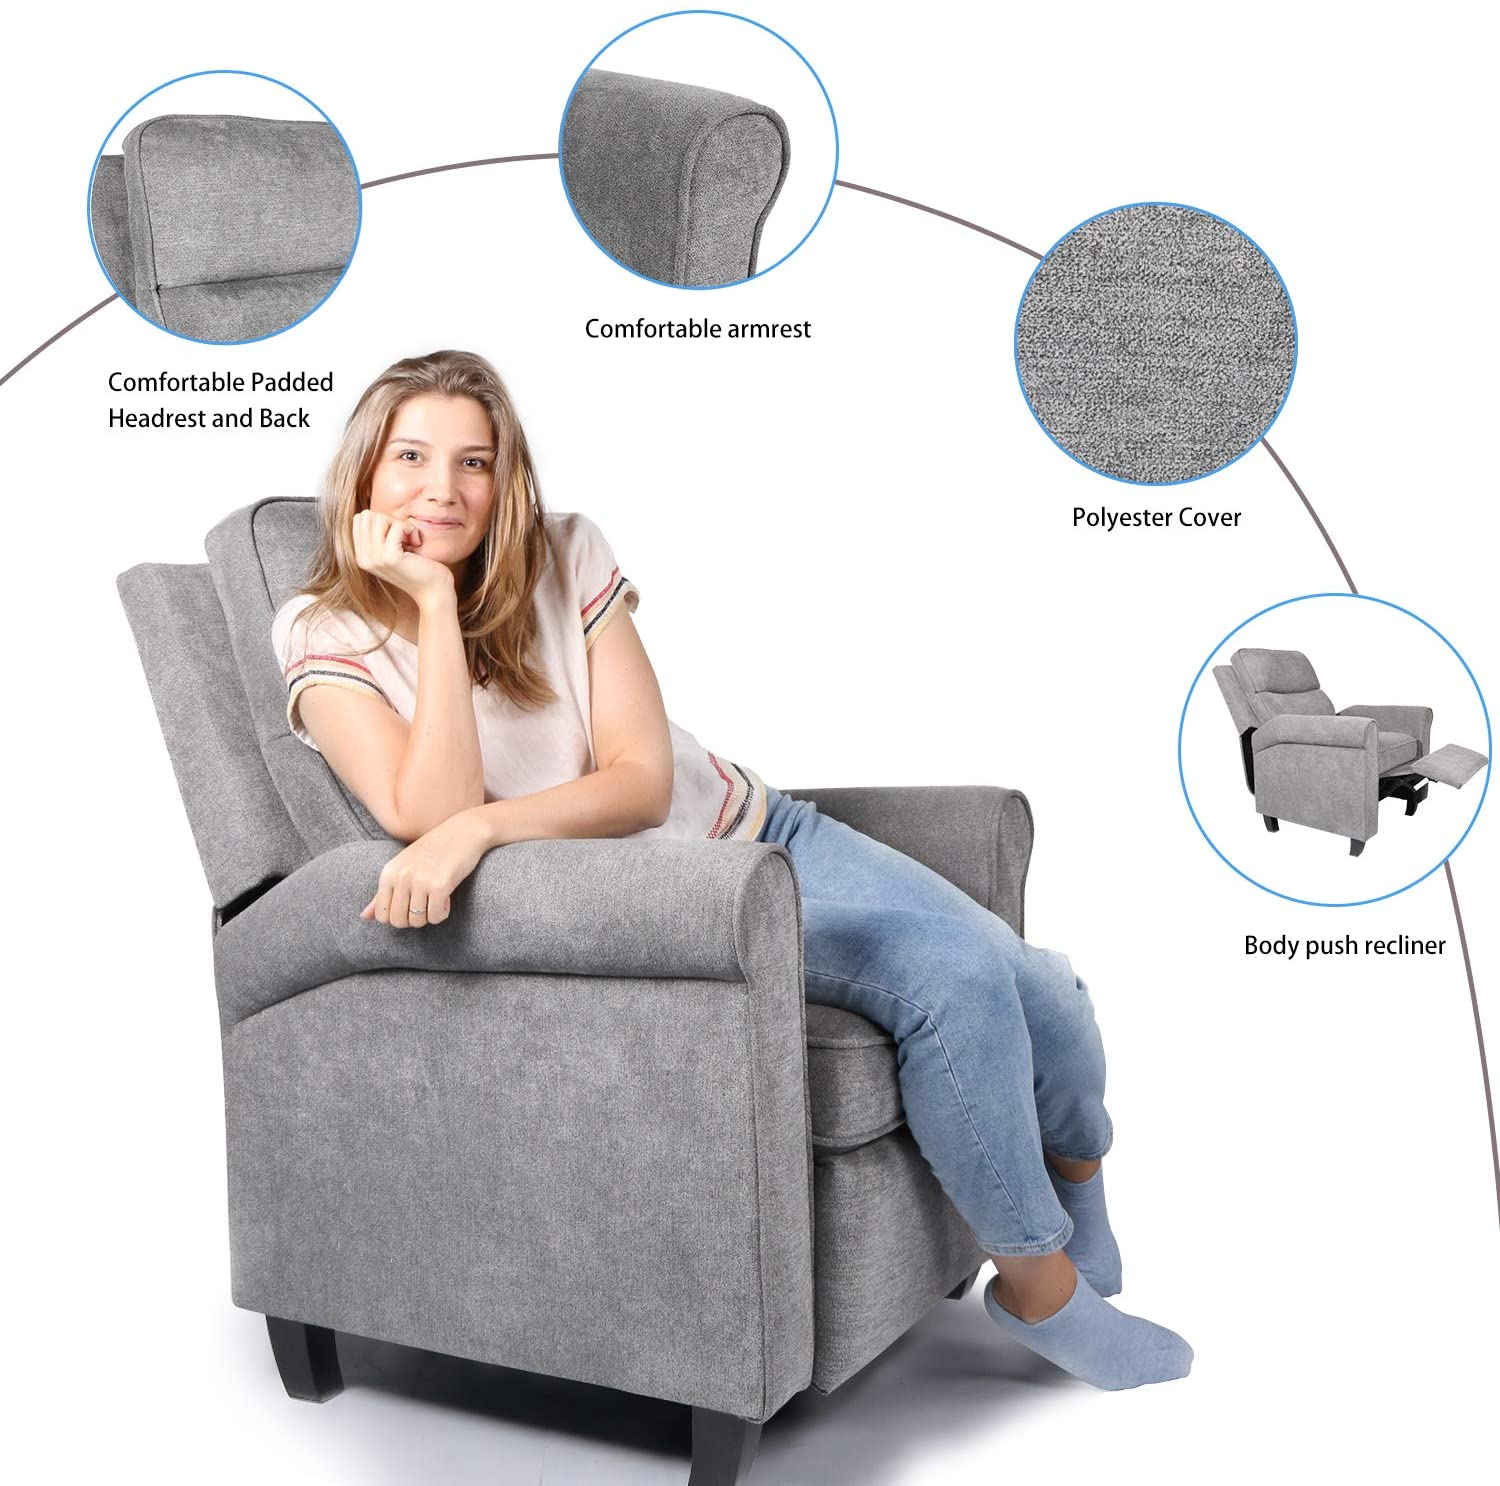 Smugdesk Fabric Recliner Chair Single Sofa Cushion Adjustable Home Theater Seating Living Room Lounge Grey